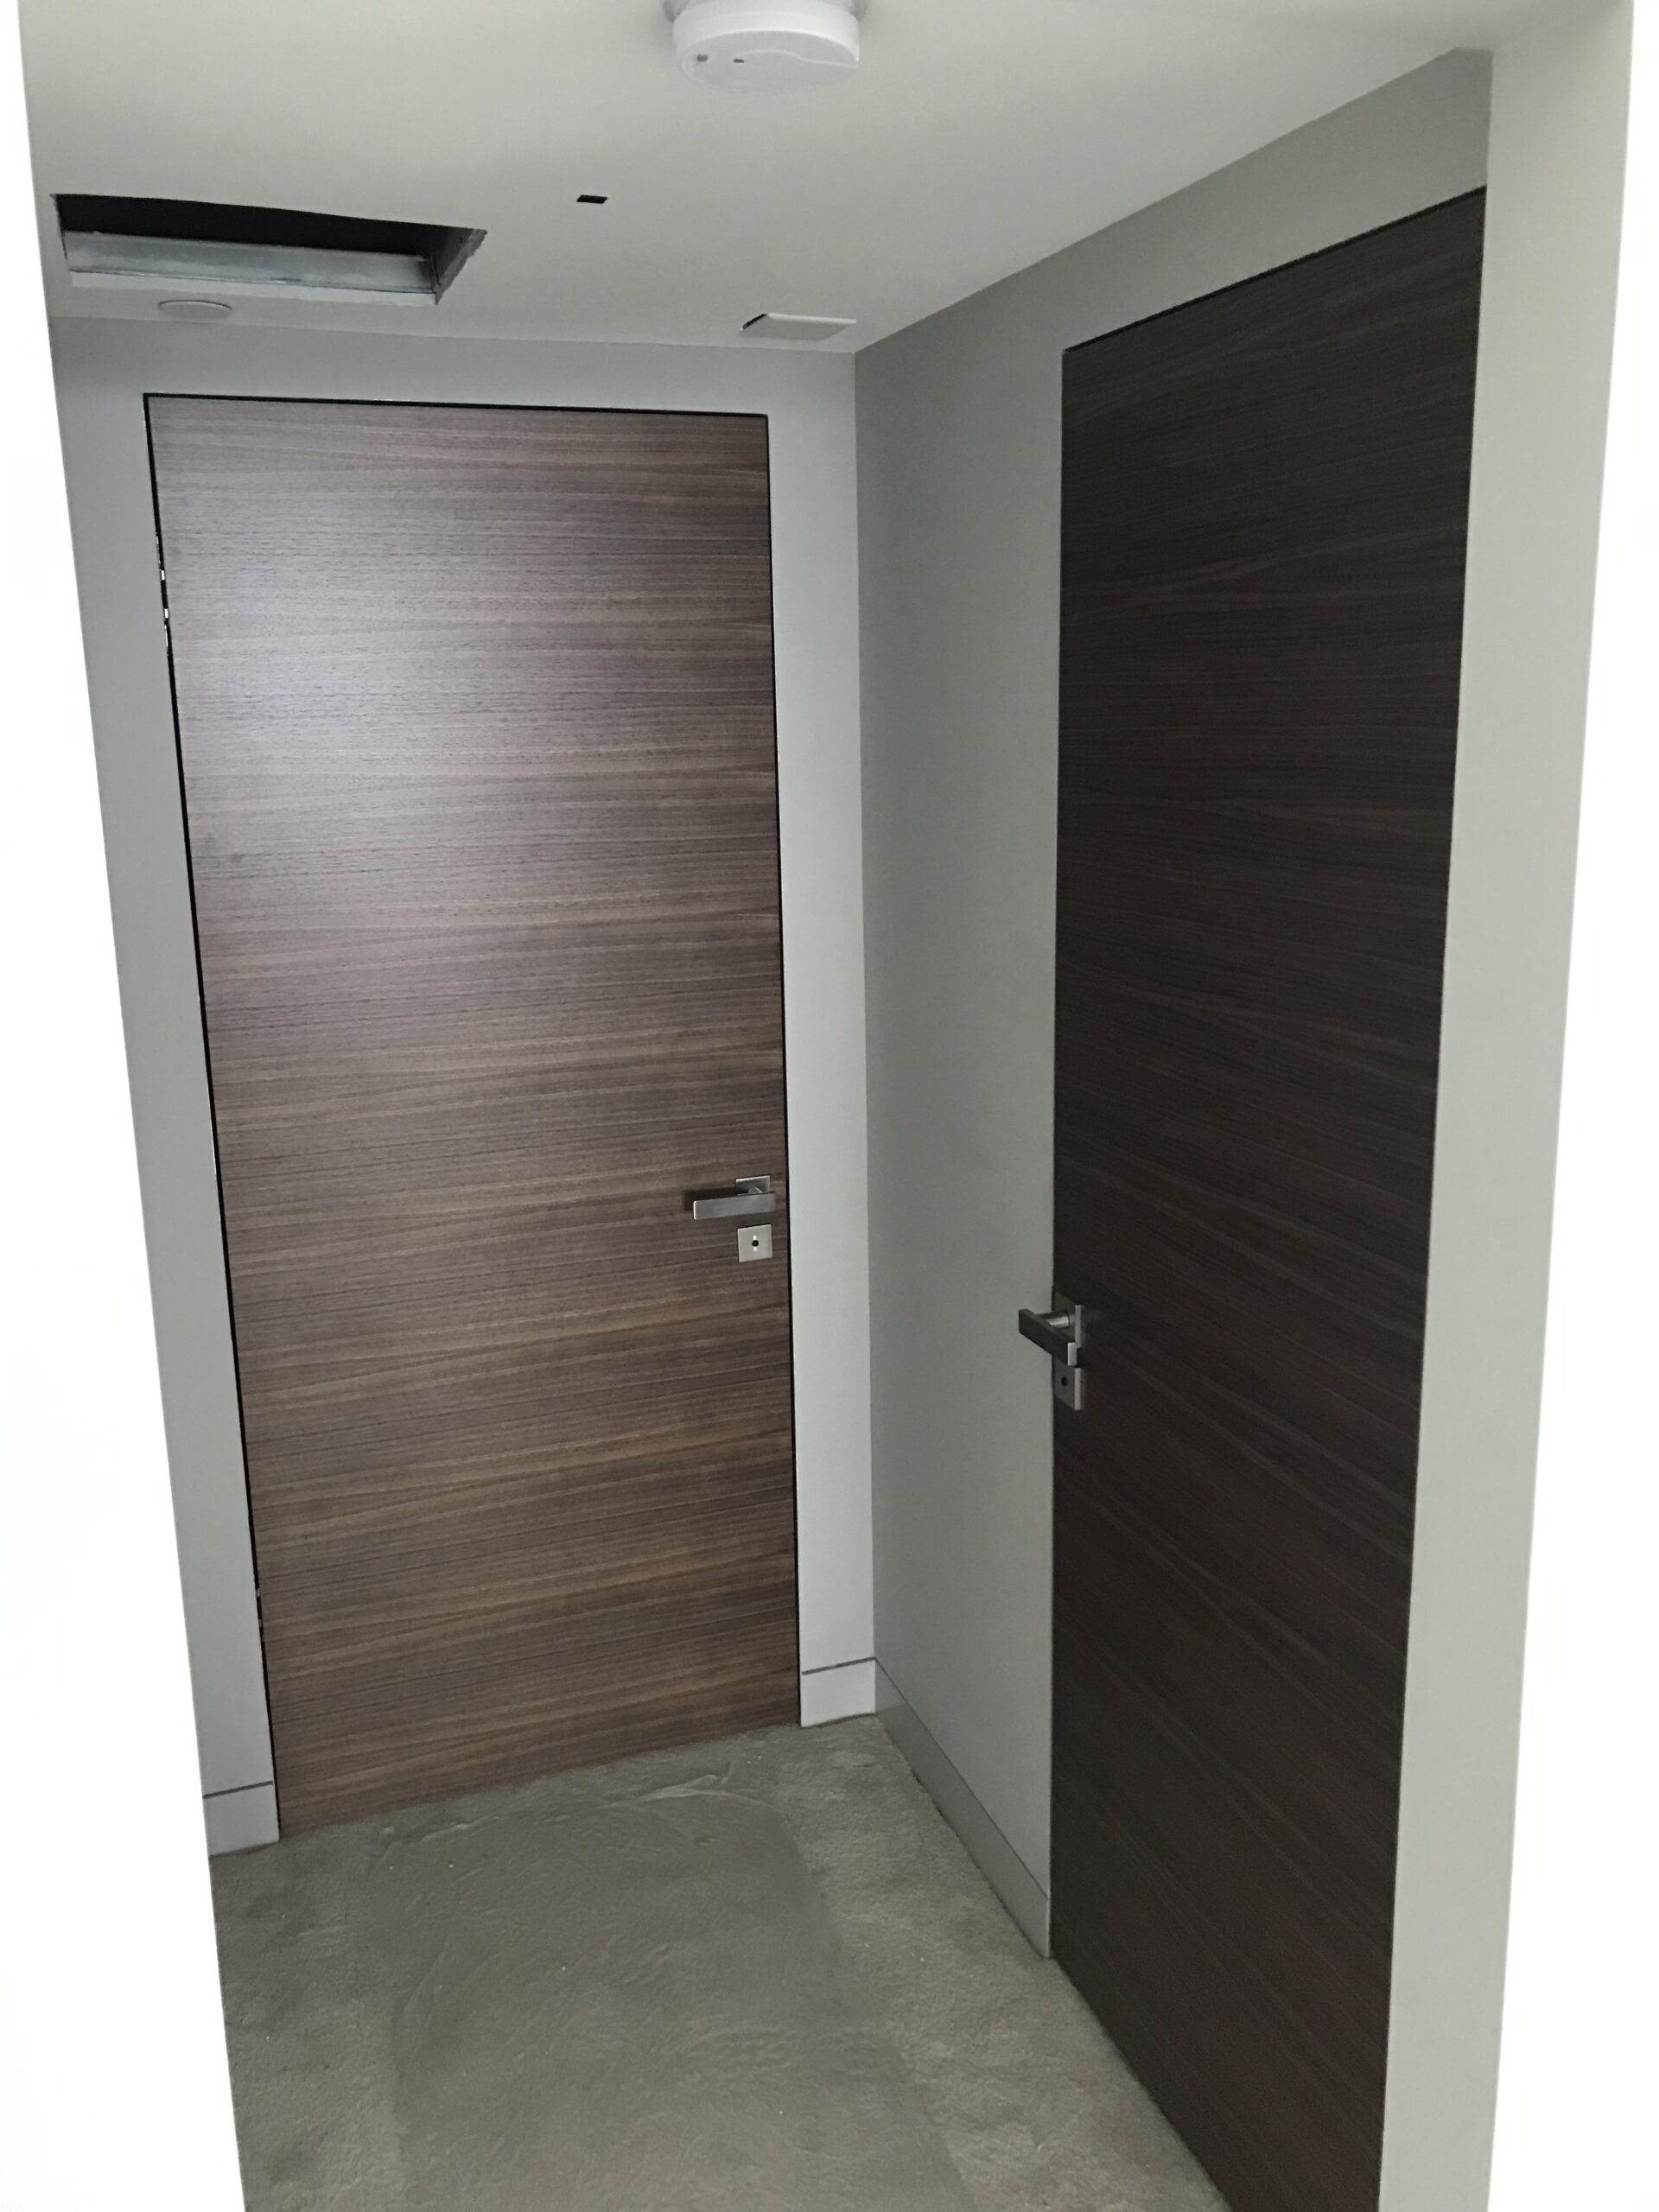 Flush with the wall interior doors